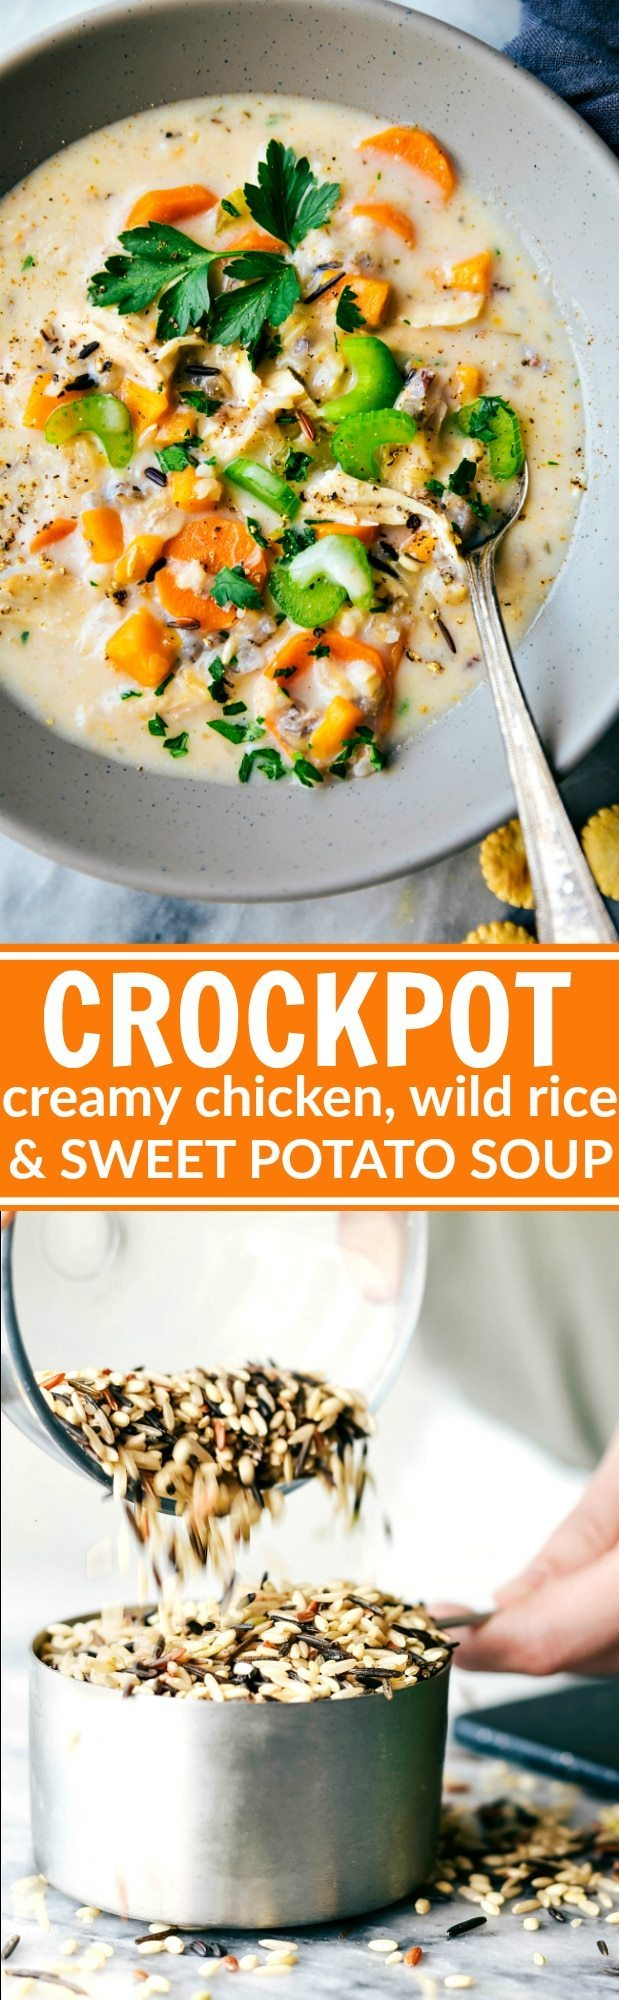 Slow cooker creamy chicken, sweet potato, and wild rice soup with extra veggies -- a dump it and forget about it dinner the whole family will love! NO Heavy Cream or Cream of X Soups!Delicious CROCKPOT soup! Recipe from chelseasmessyapron.com